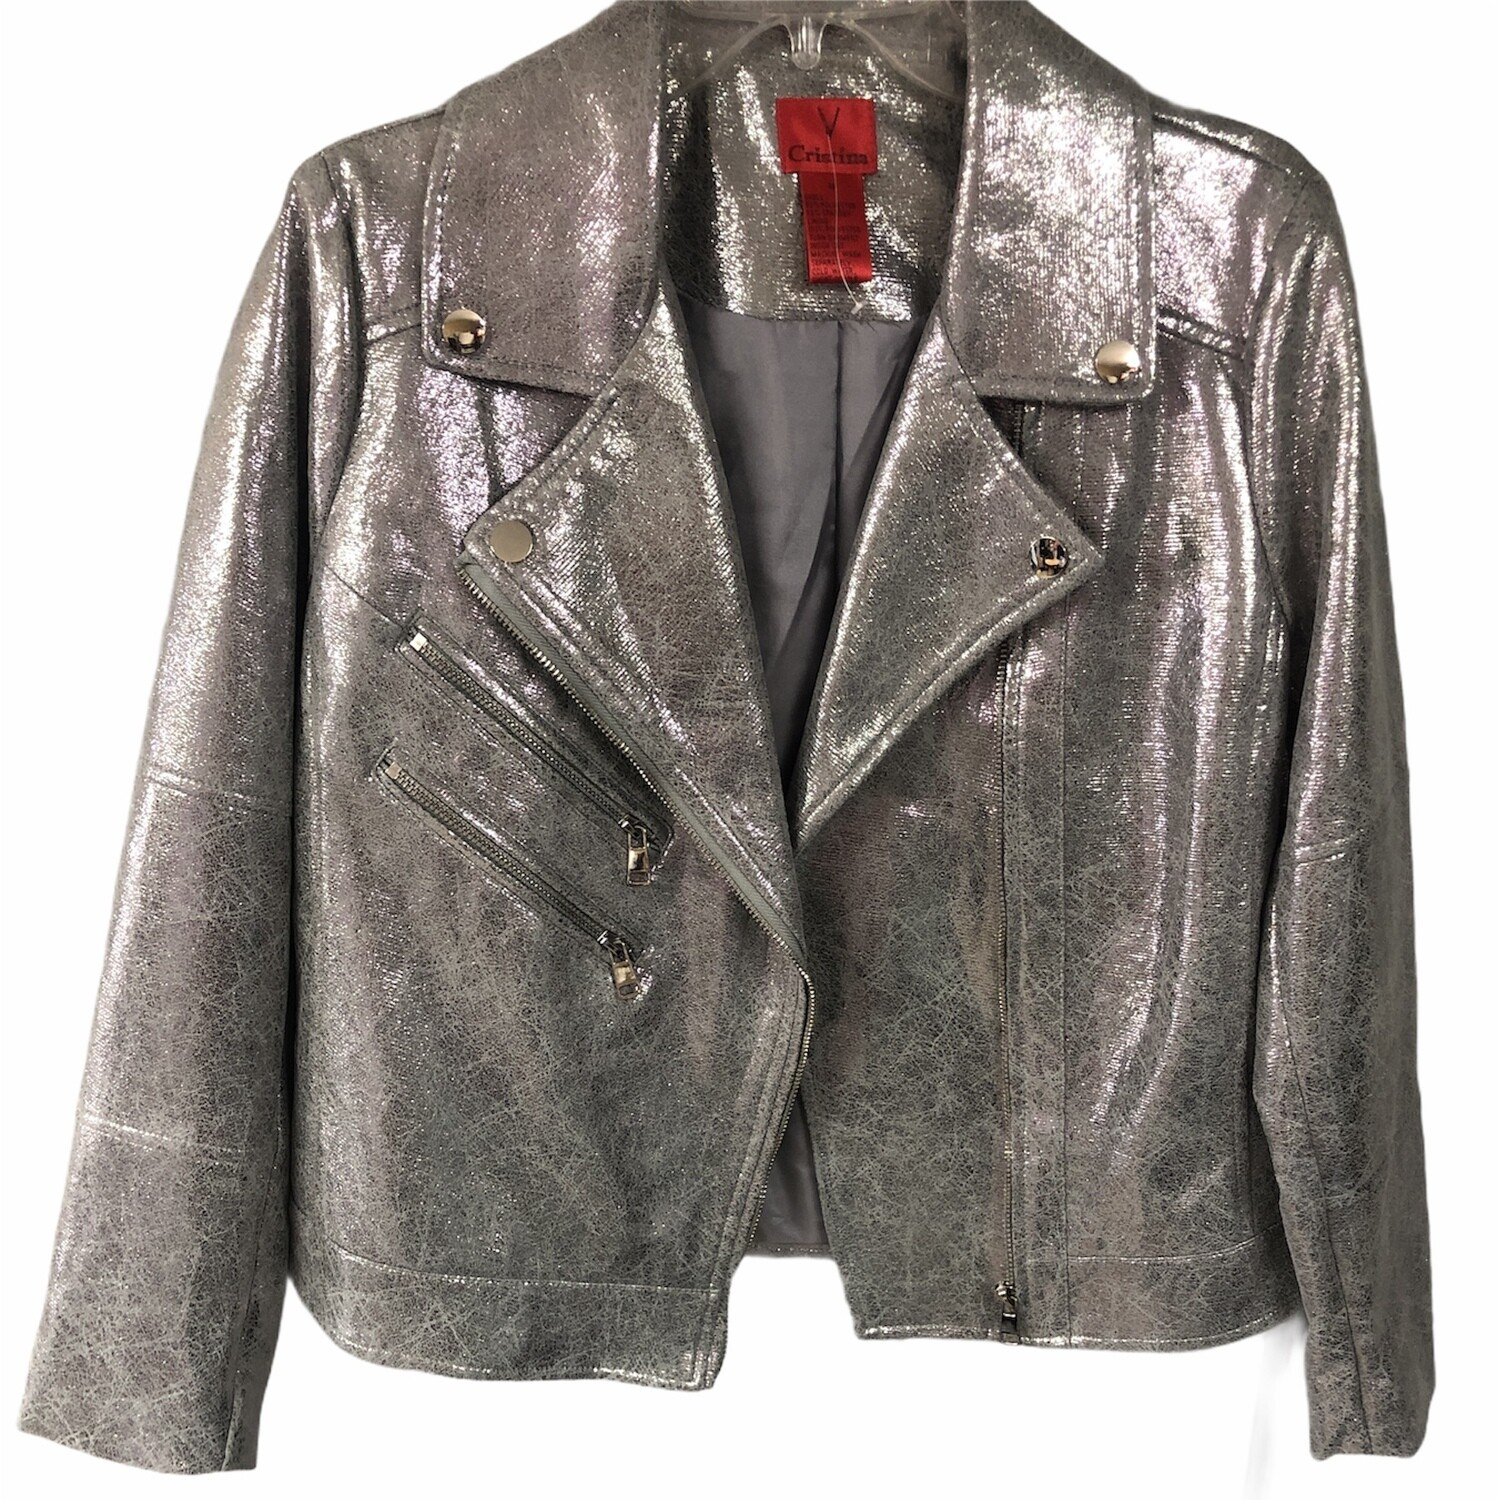 CRISTINA Metallic Pewter Moto Jacket size Medium